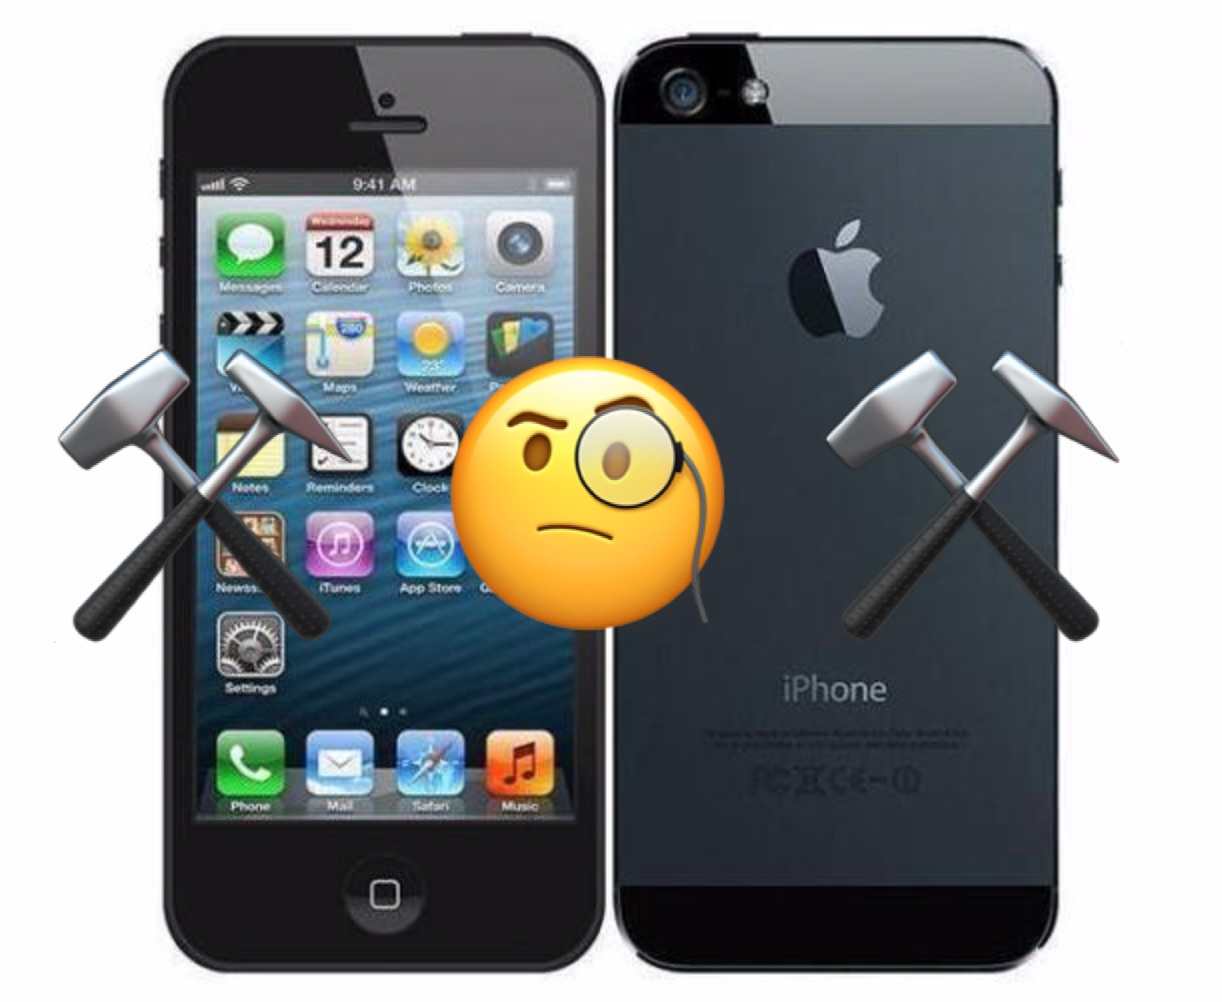 How to Fix iPhone 5 Not Working Recently with Internet, Calls, Data, GPS